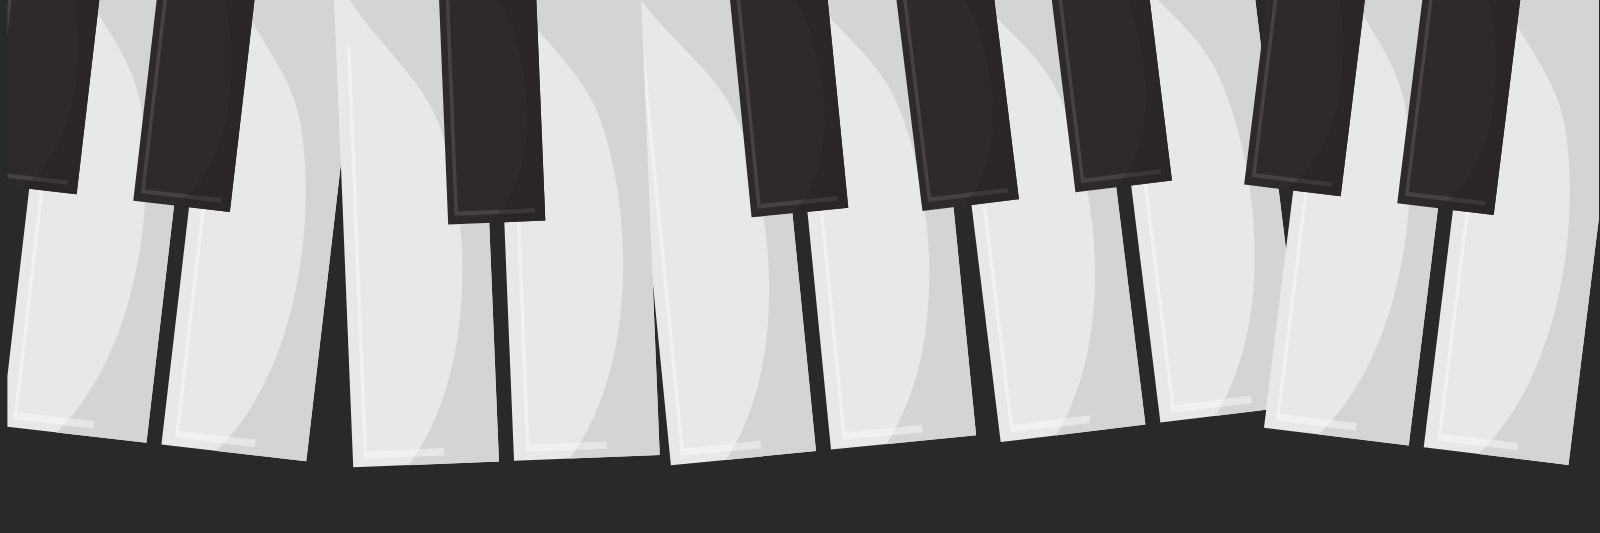 Piano-Banner.png